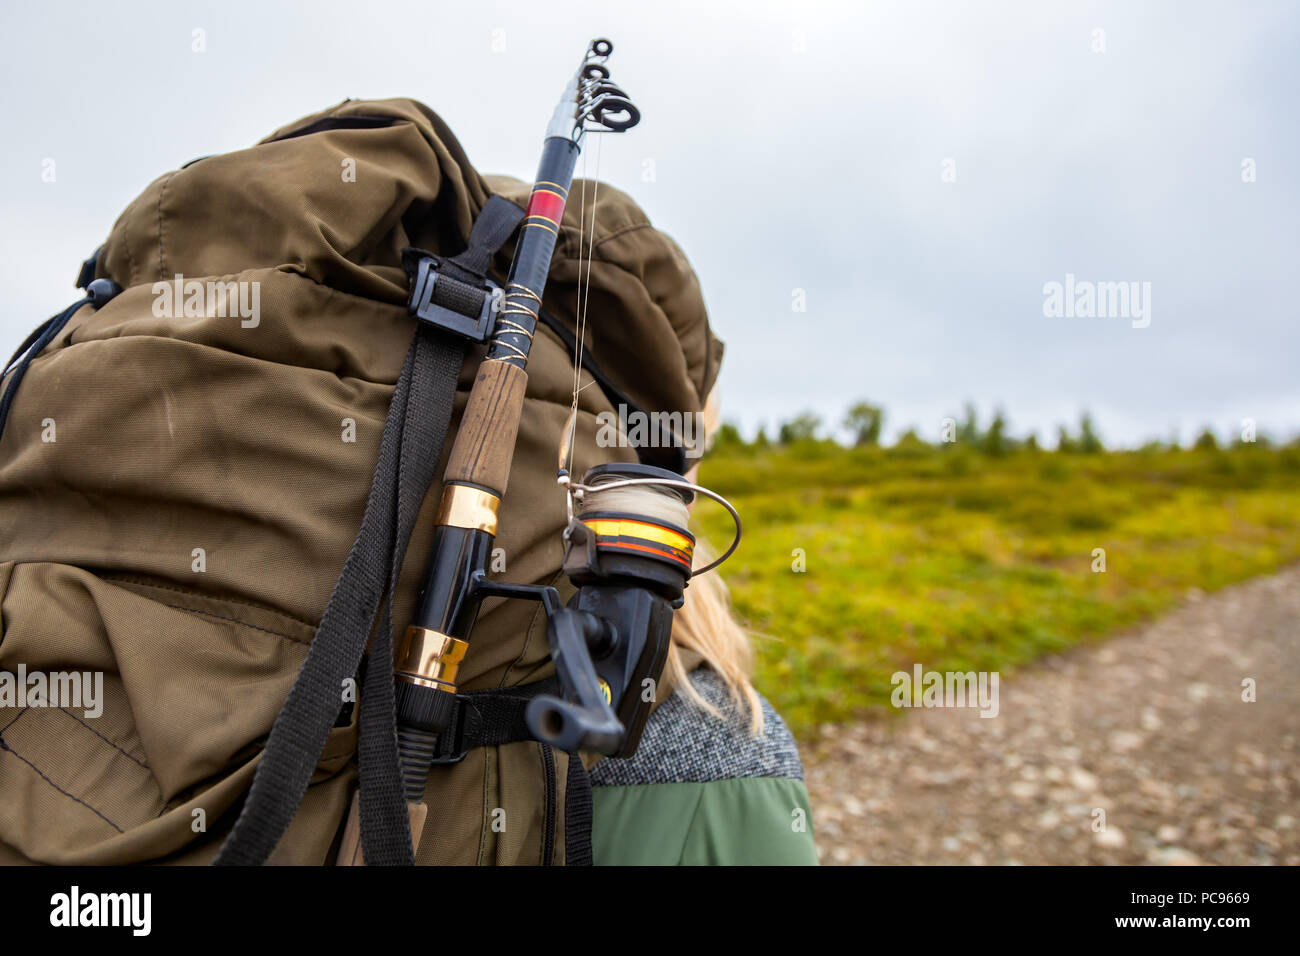 Close Up View Of Back Tourist Woman Brown Backpack And Fishing Rod Wearing On Green Tourism Jacket And Walking Along The Path To The Mountains On A Stock Photo Alamy